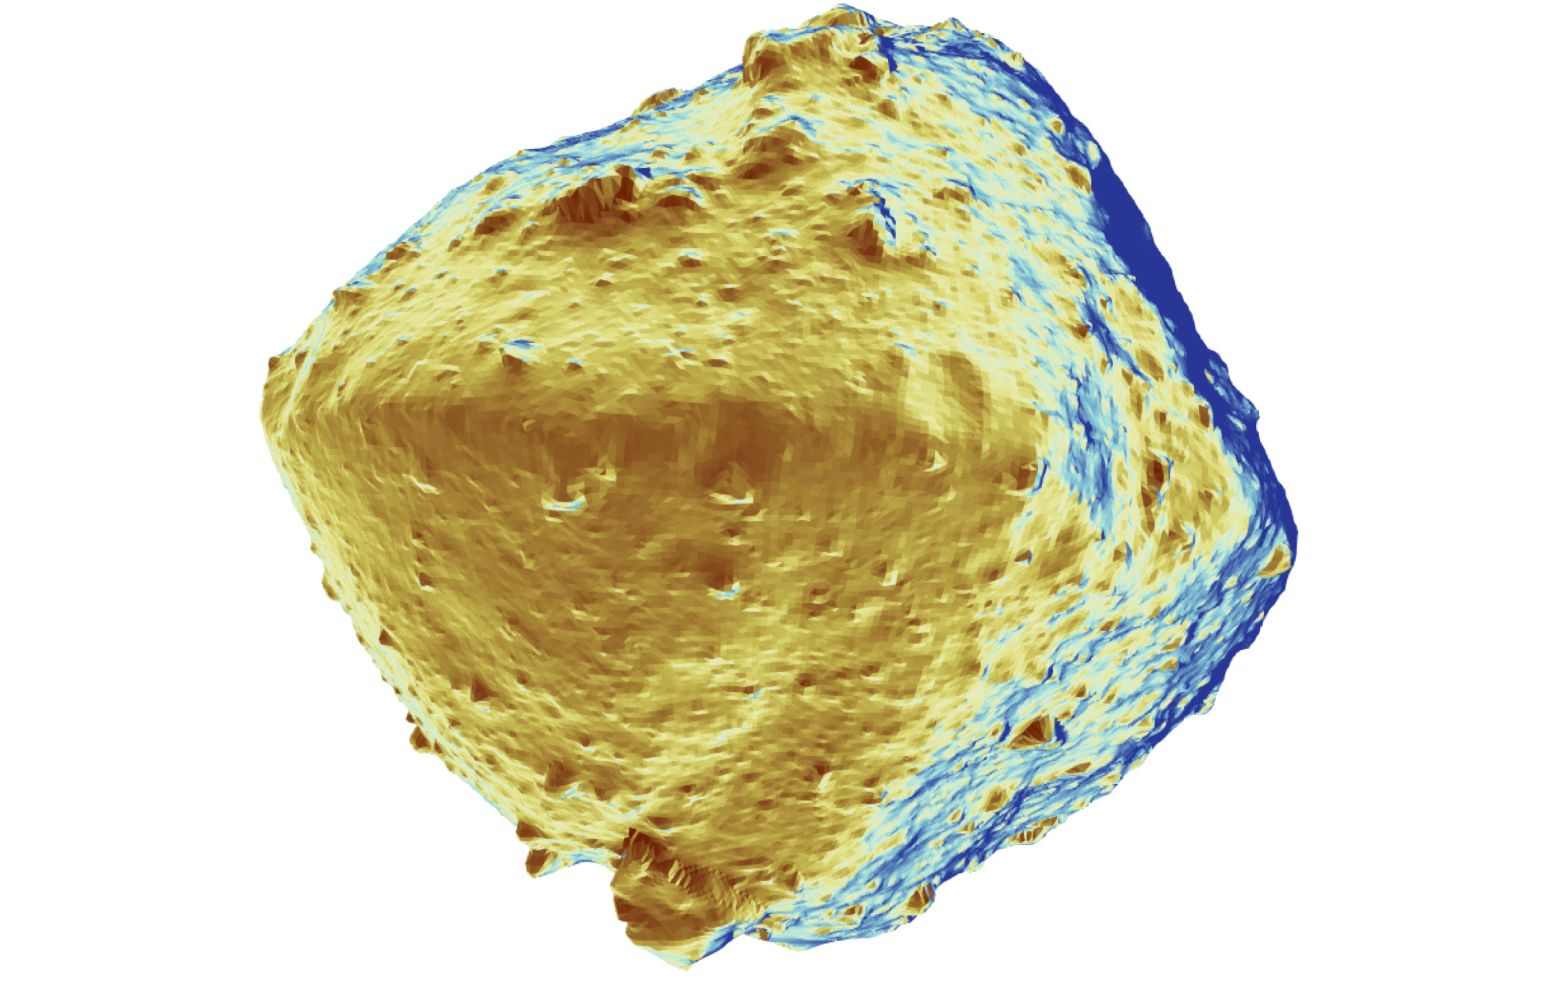 It is unclear how Ryugu's parent body became so dehydrated. Image credit: 2019 Seiji Sugita et al., Science